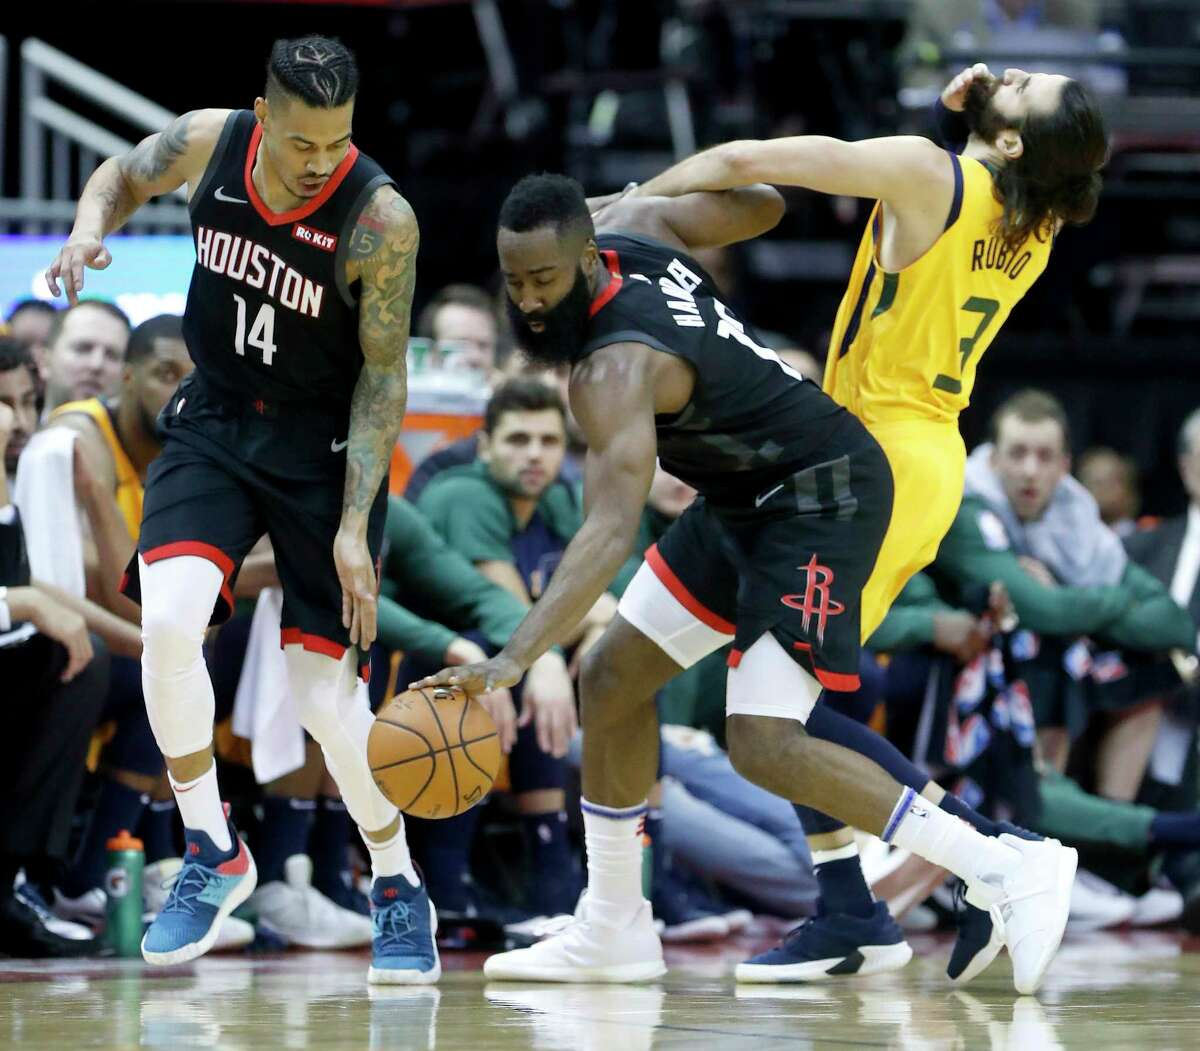 Houston Rockets guards James Harden (13) and Gerald Green (14) reach for a ball against Utah Jazz guard Ricky Rubio (3) during the first half of an NBA game at Toyota Center, Monday, Dec. 17, 2018, in Houston.